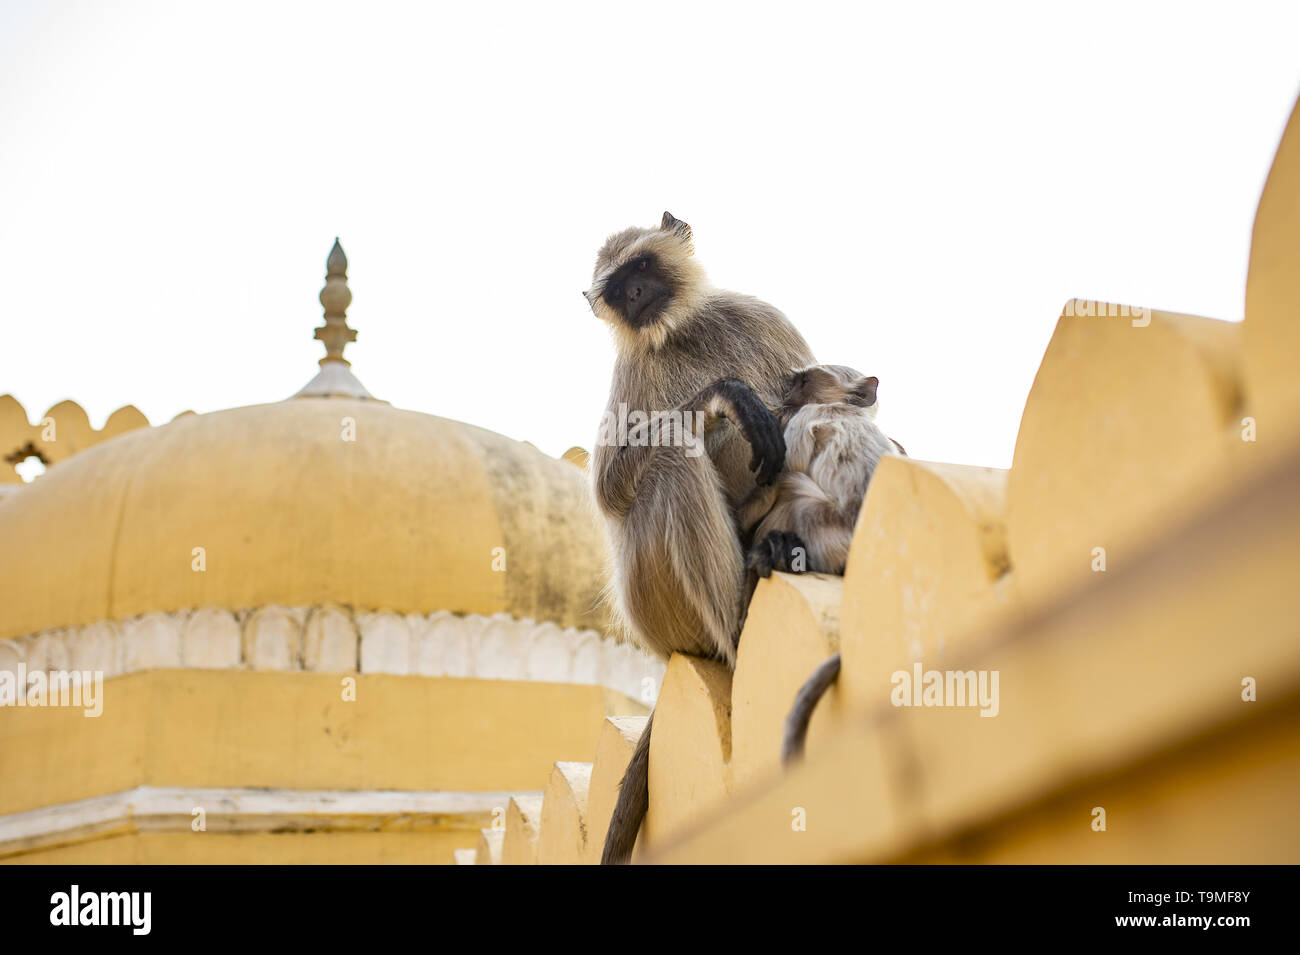 A gray langur monkey is nursing her son sitting on a temple in Jaipur. Gray Langurs are a group of Old World monkeys native to the Indian subcontinent - Stock Image